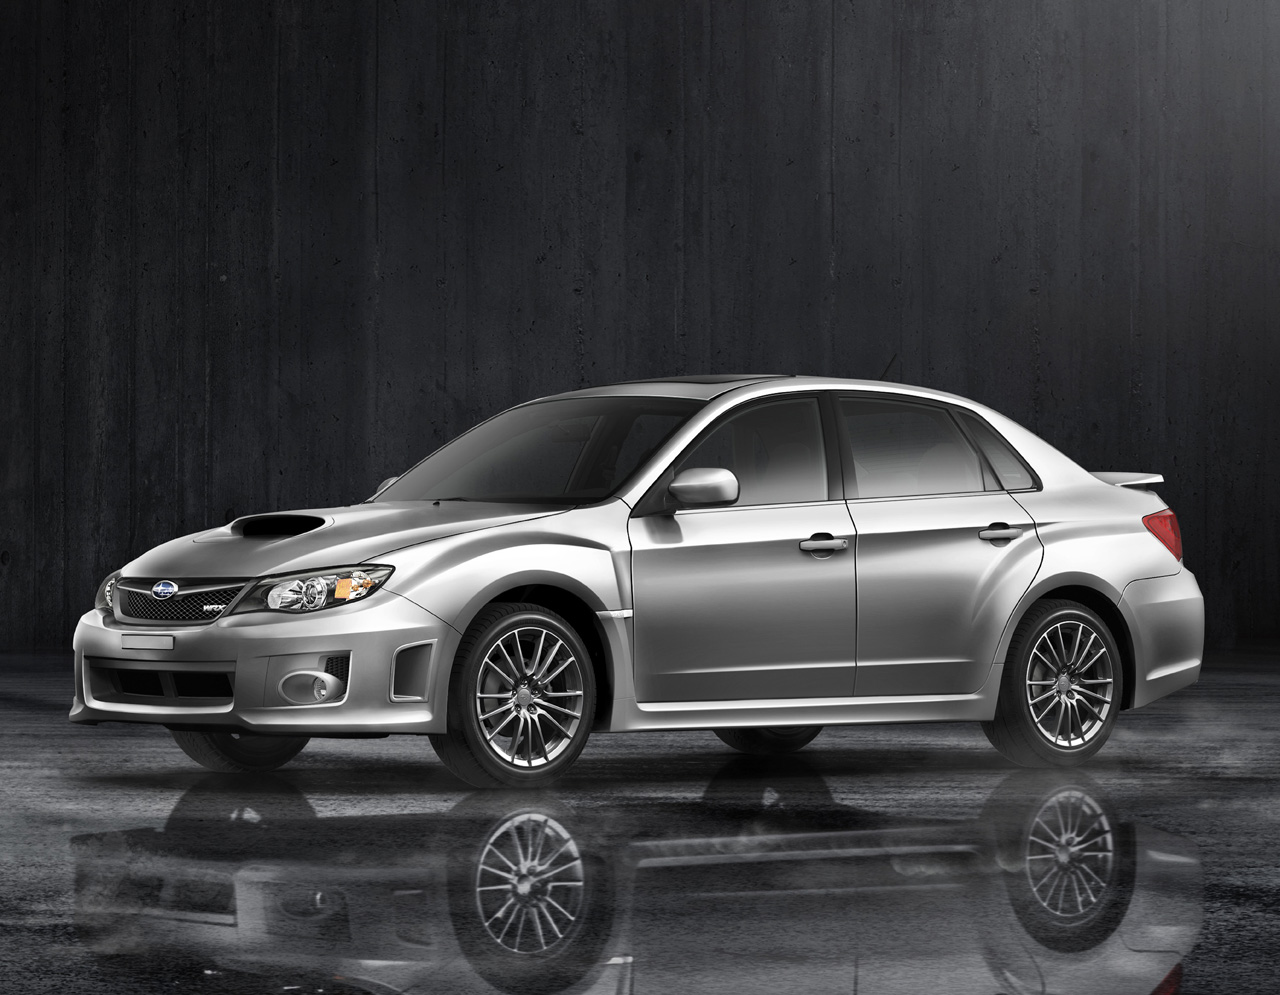 impreza 2011 wrx. Black Bedroom Furniture Sets. Home Design Ideas